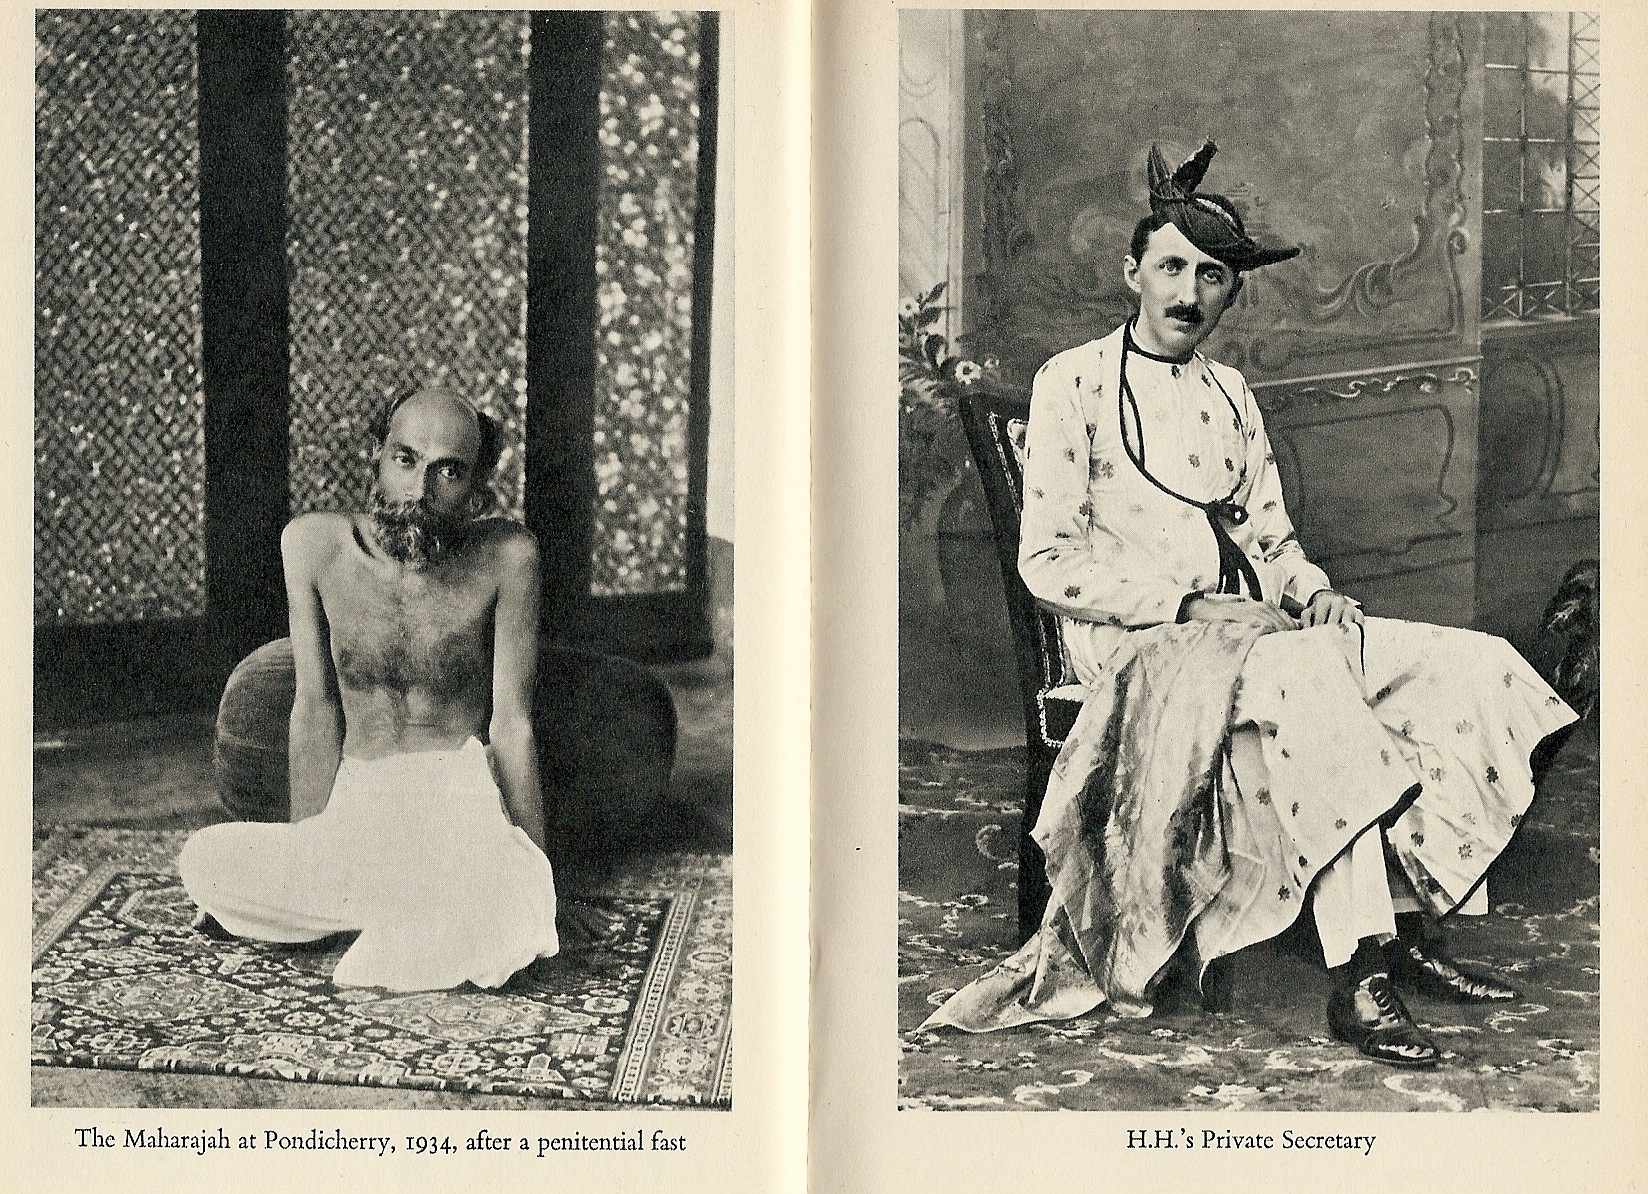 The writer EM Forster as private secretary to the Maharajah at Pondicherry, 1934 - a period covered in this novel.